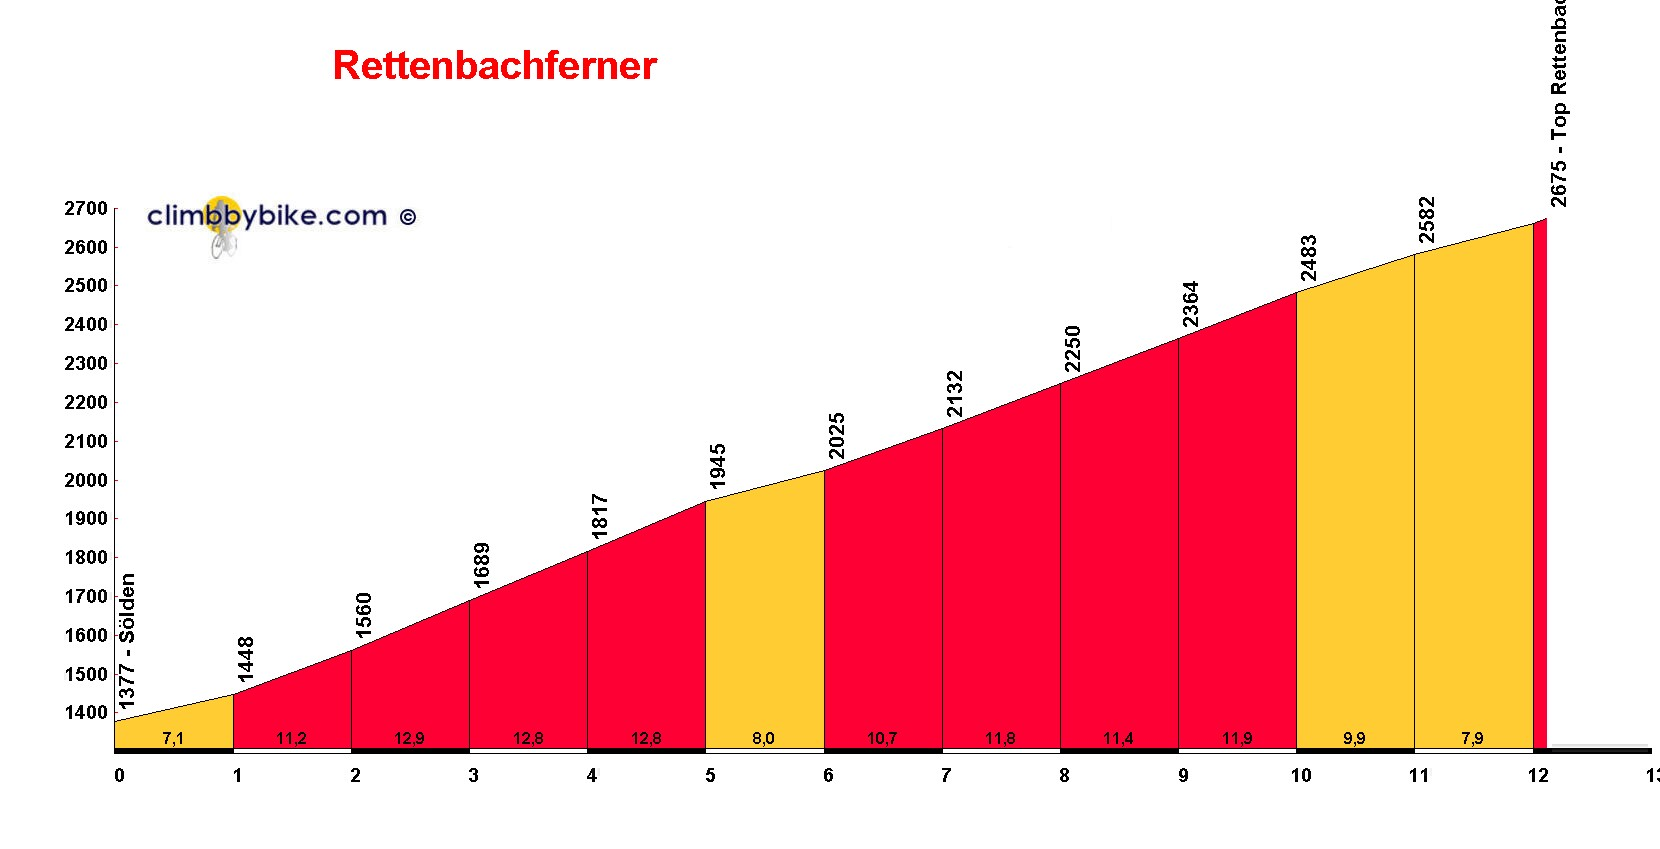 Elevation profile for Rettenbachferner